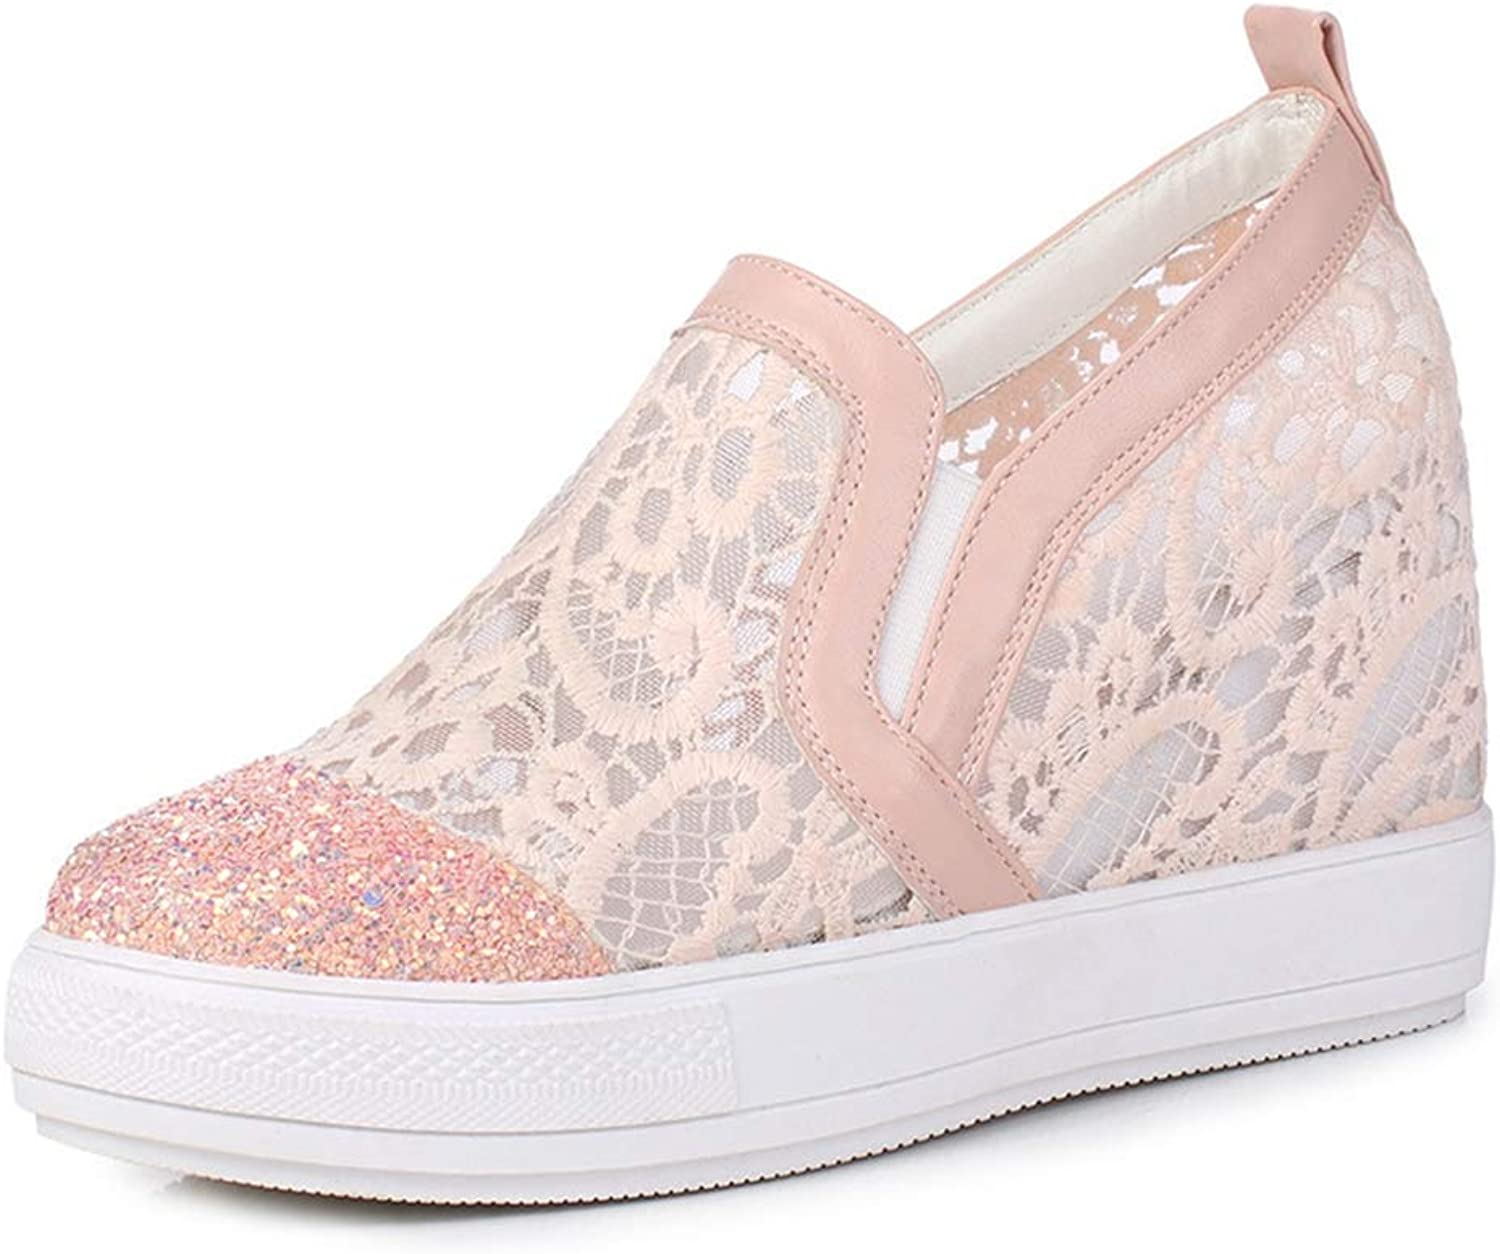 Fashion shoesbox Women Fashion Laces Low Top Slip On Wedge Sneakers Platform Increased Height Casual Sports shoes